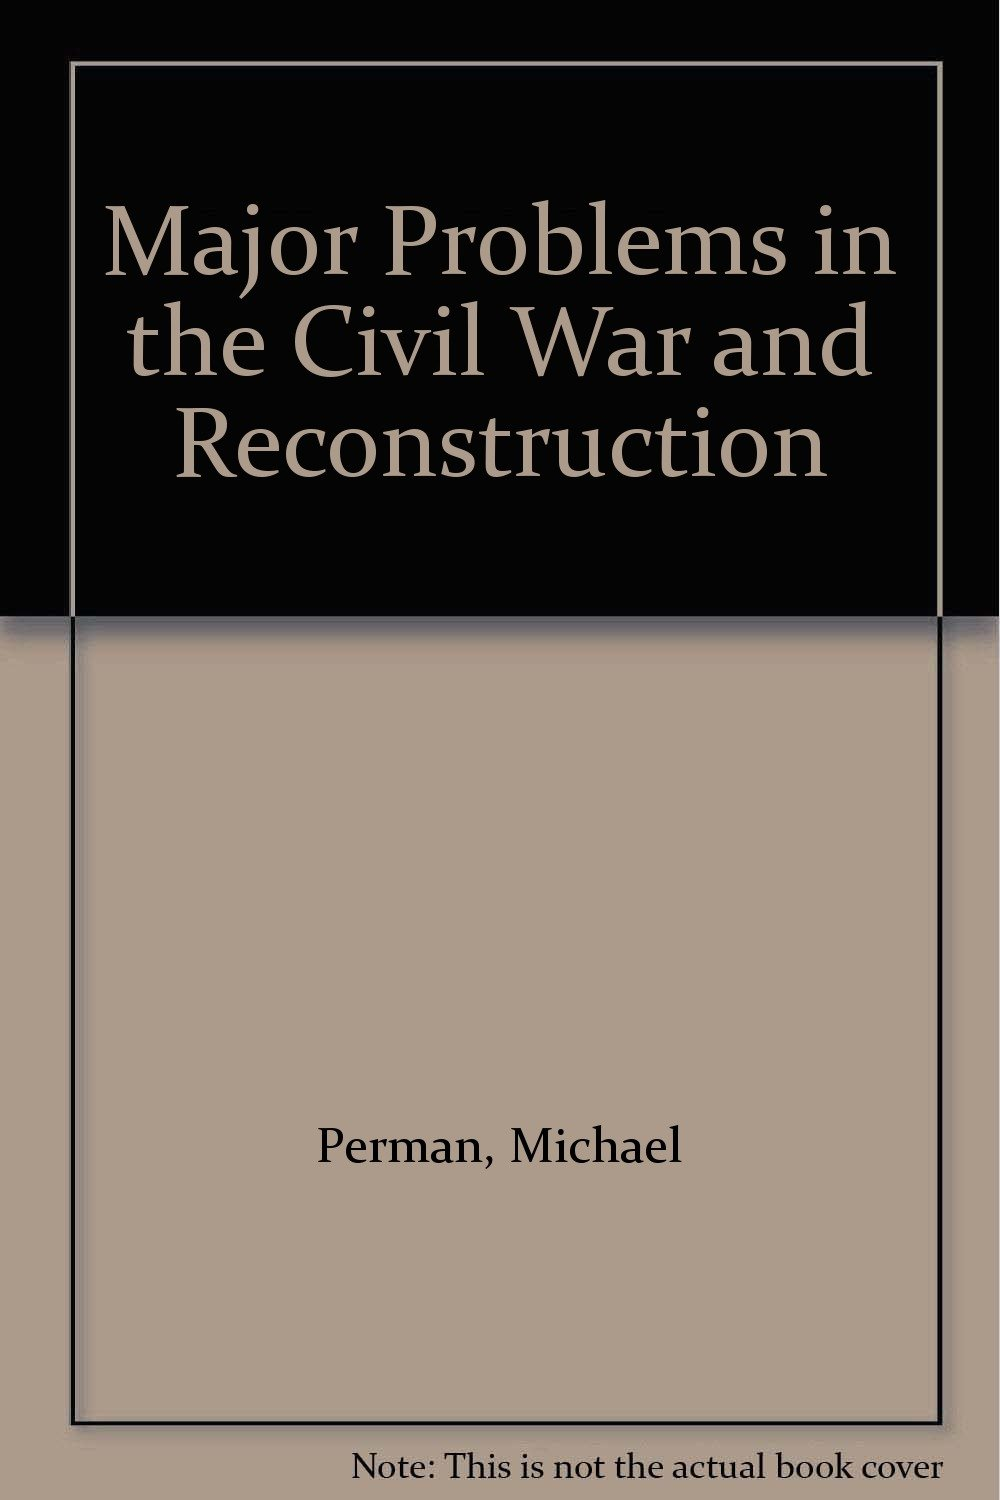 major problems in the civil war and reconstruction michael perman major problems in the civil war and reconstruction michael perman sean wilentz 9780395959688 com books